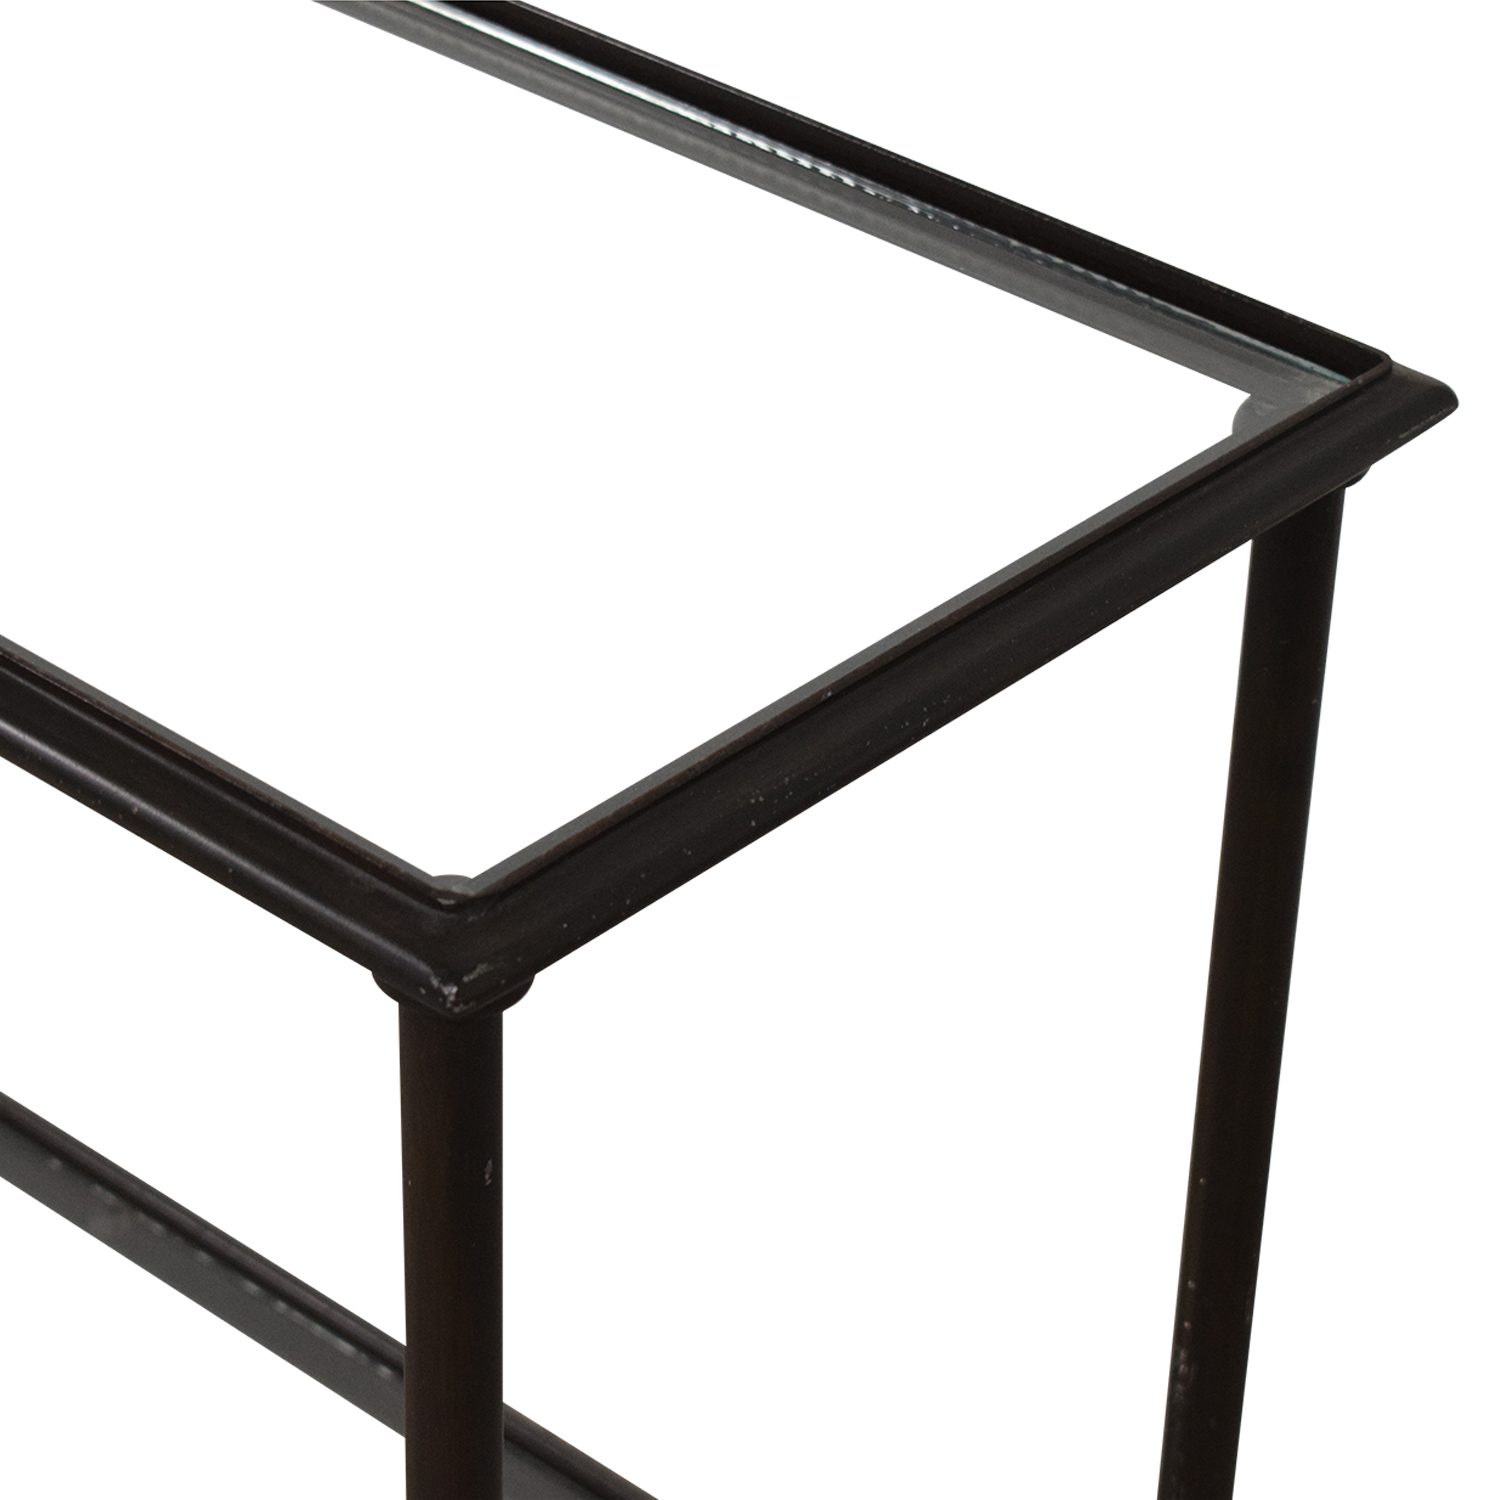 Crate & Barrel Crate & Barrel Glass and Iron Console Table used